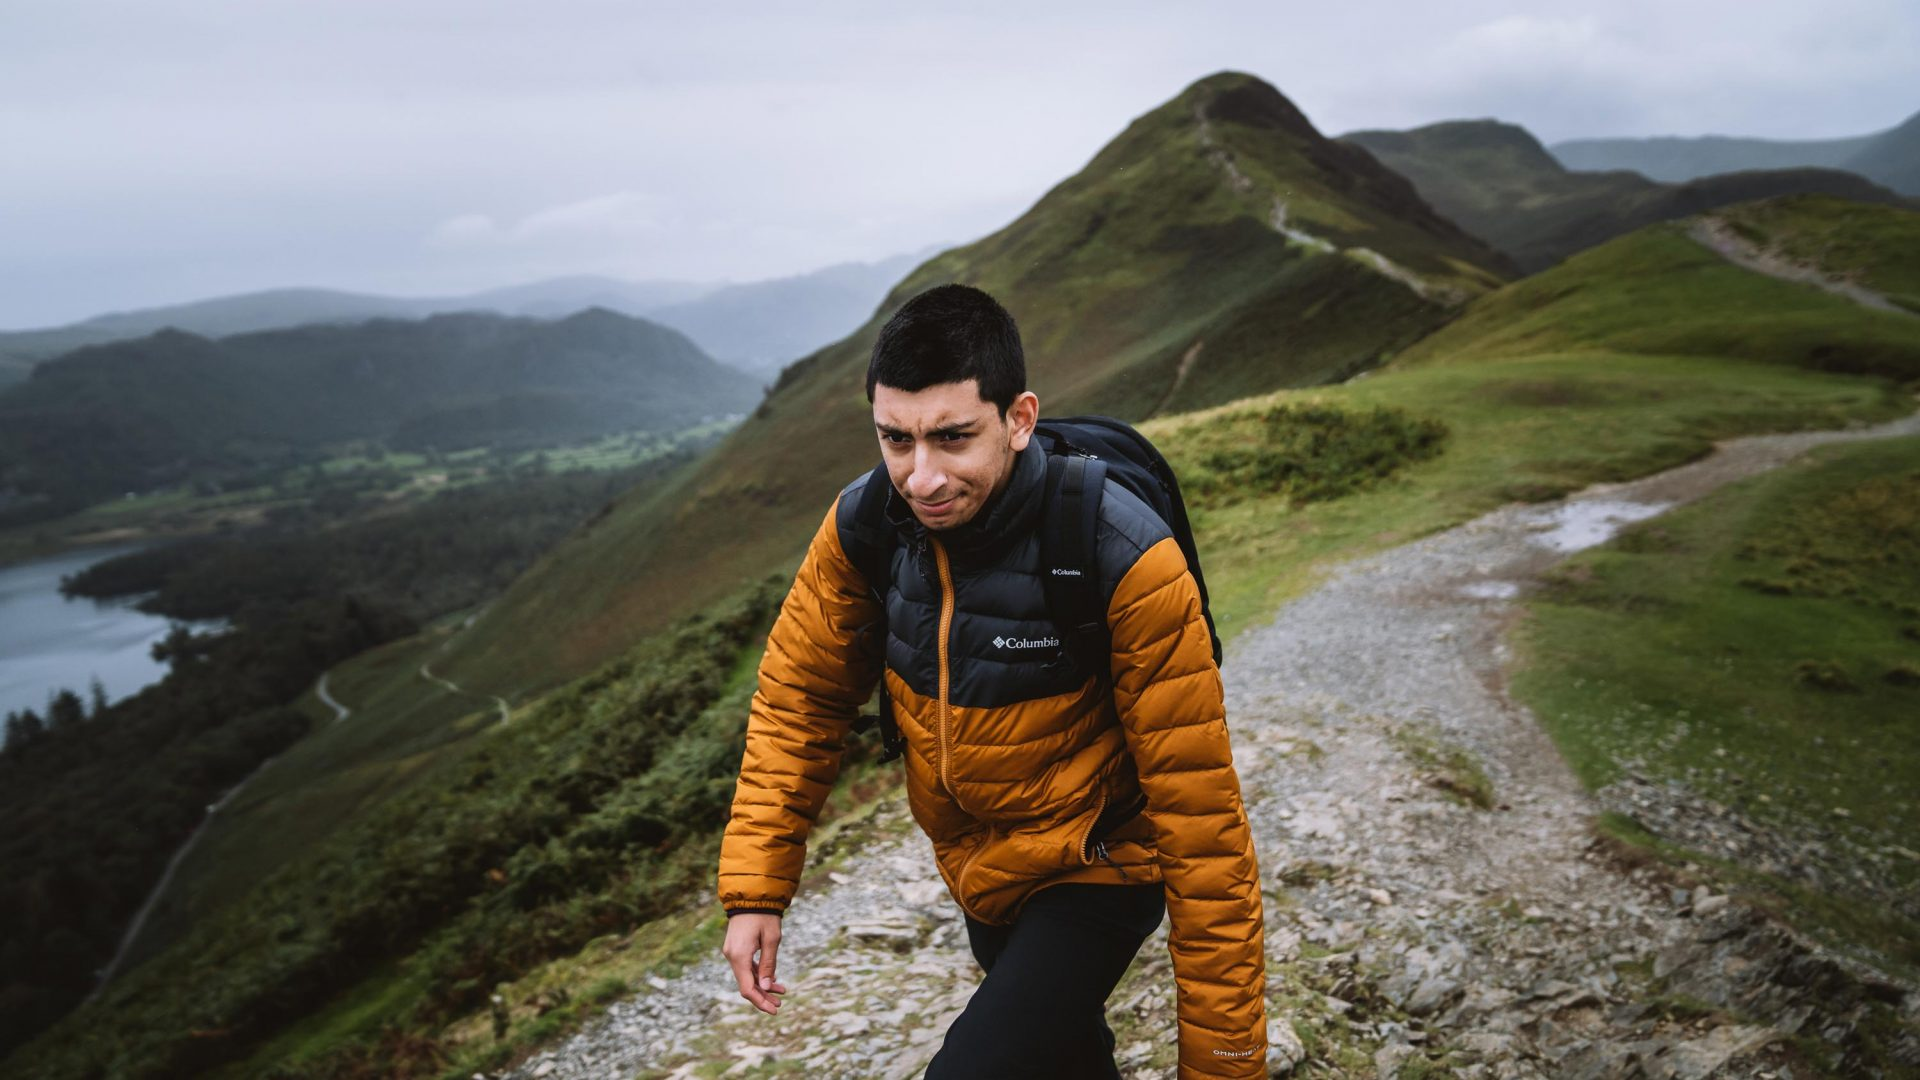 Zaim Ali, one of the members of Boots and Beards on a hike in Glasgow.